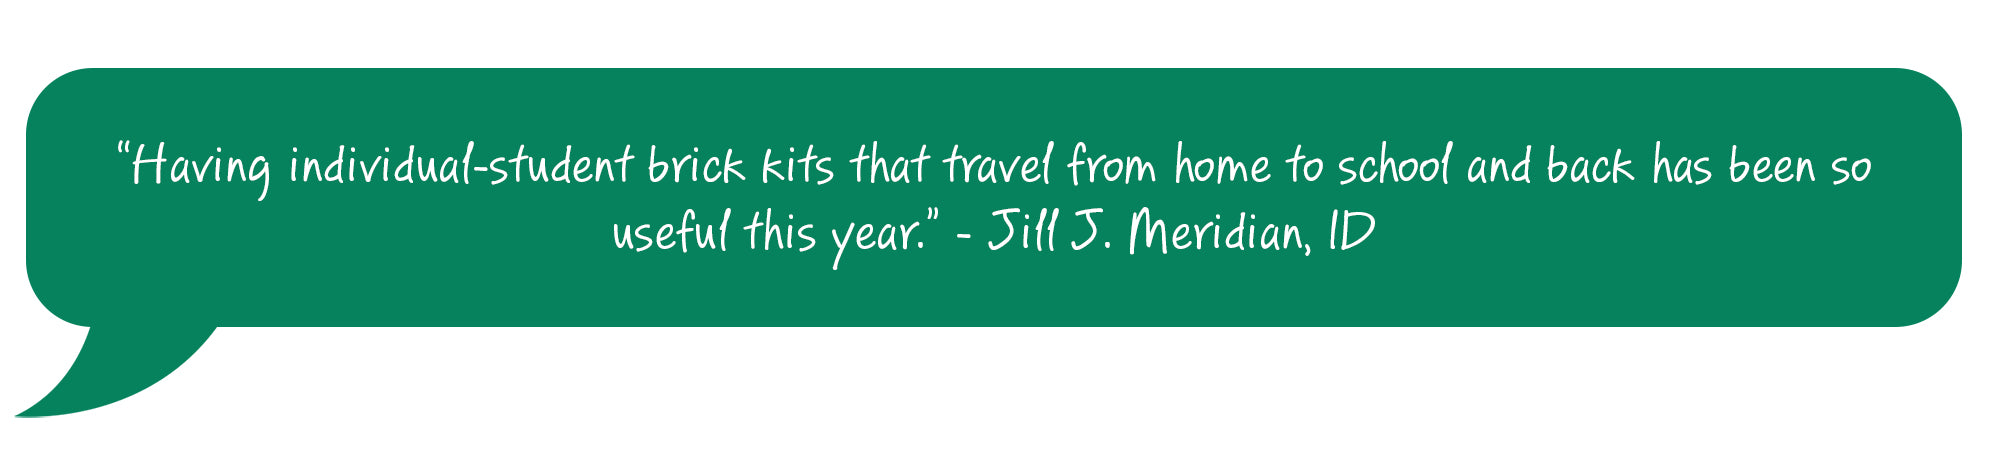 Having individual-student brick kits that travel from home to school and back has been so useful this year. Jill J. Meridian, ID